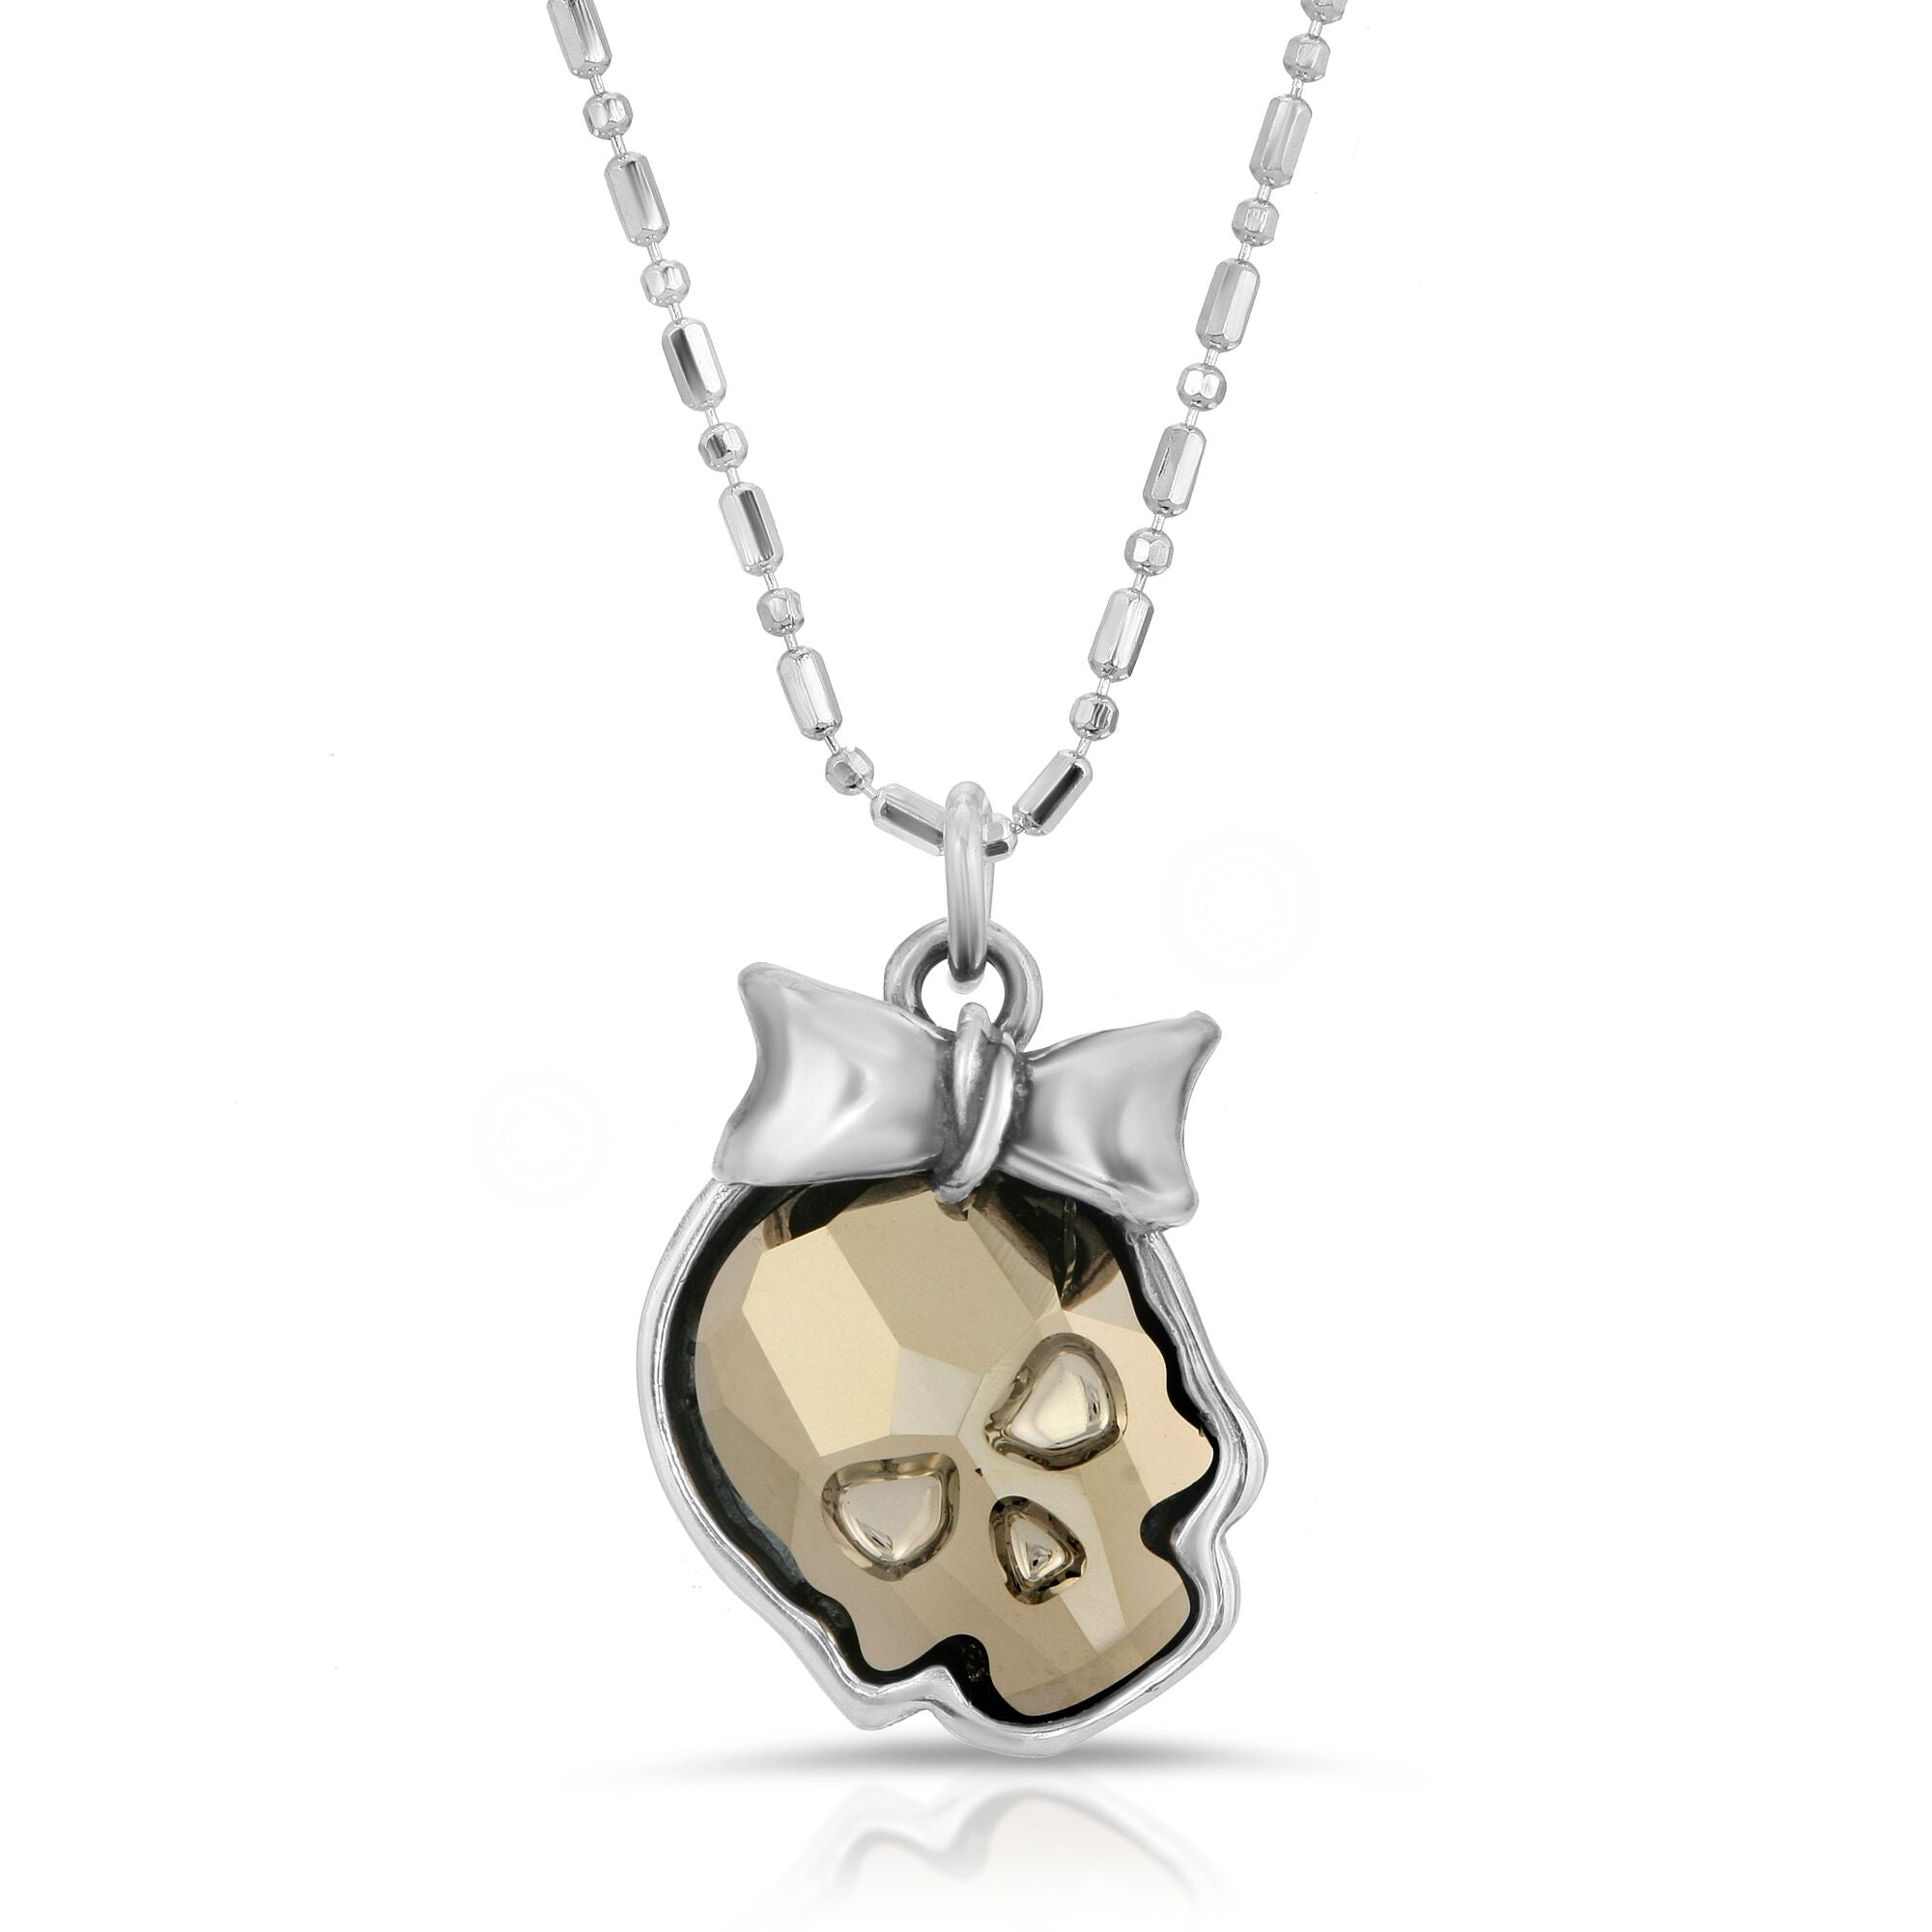 The W brothers Swarovski Skull Necklace in metallic gold with a gorgeous silver ribbon crafted from premium Grade A Sterling Silver. Perfect jewelry accessory necklace for fashionable statement women. Available at www.thewbros.com